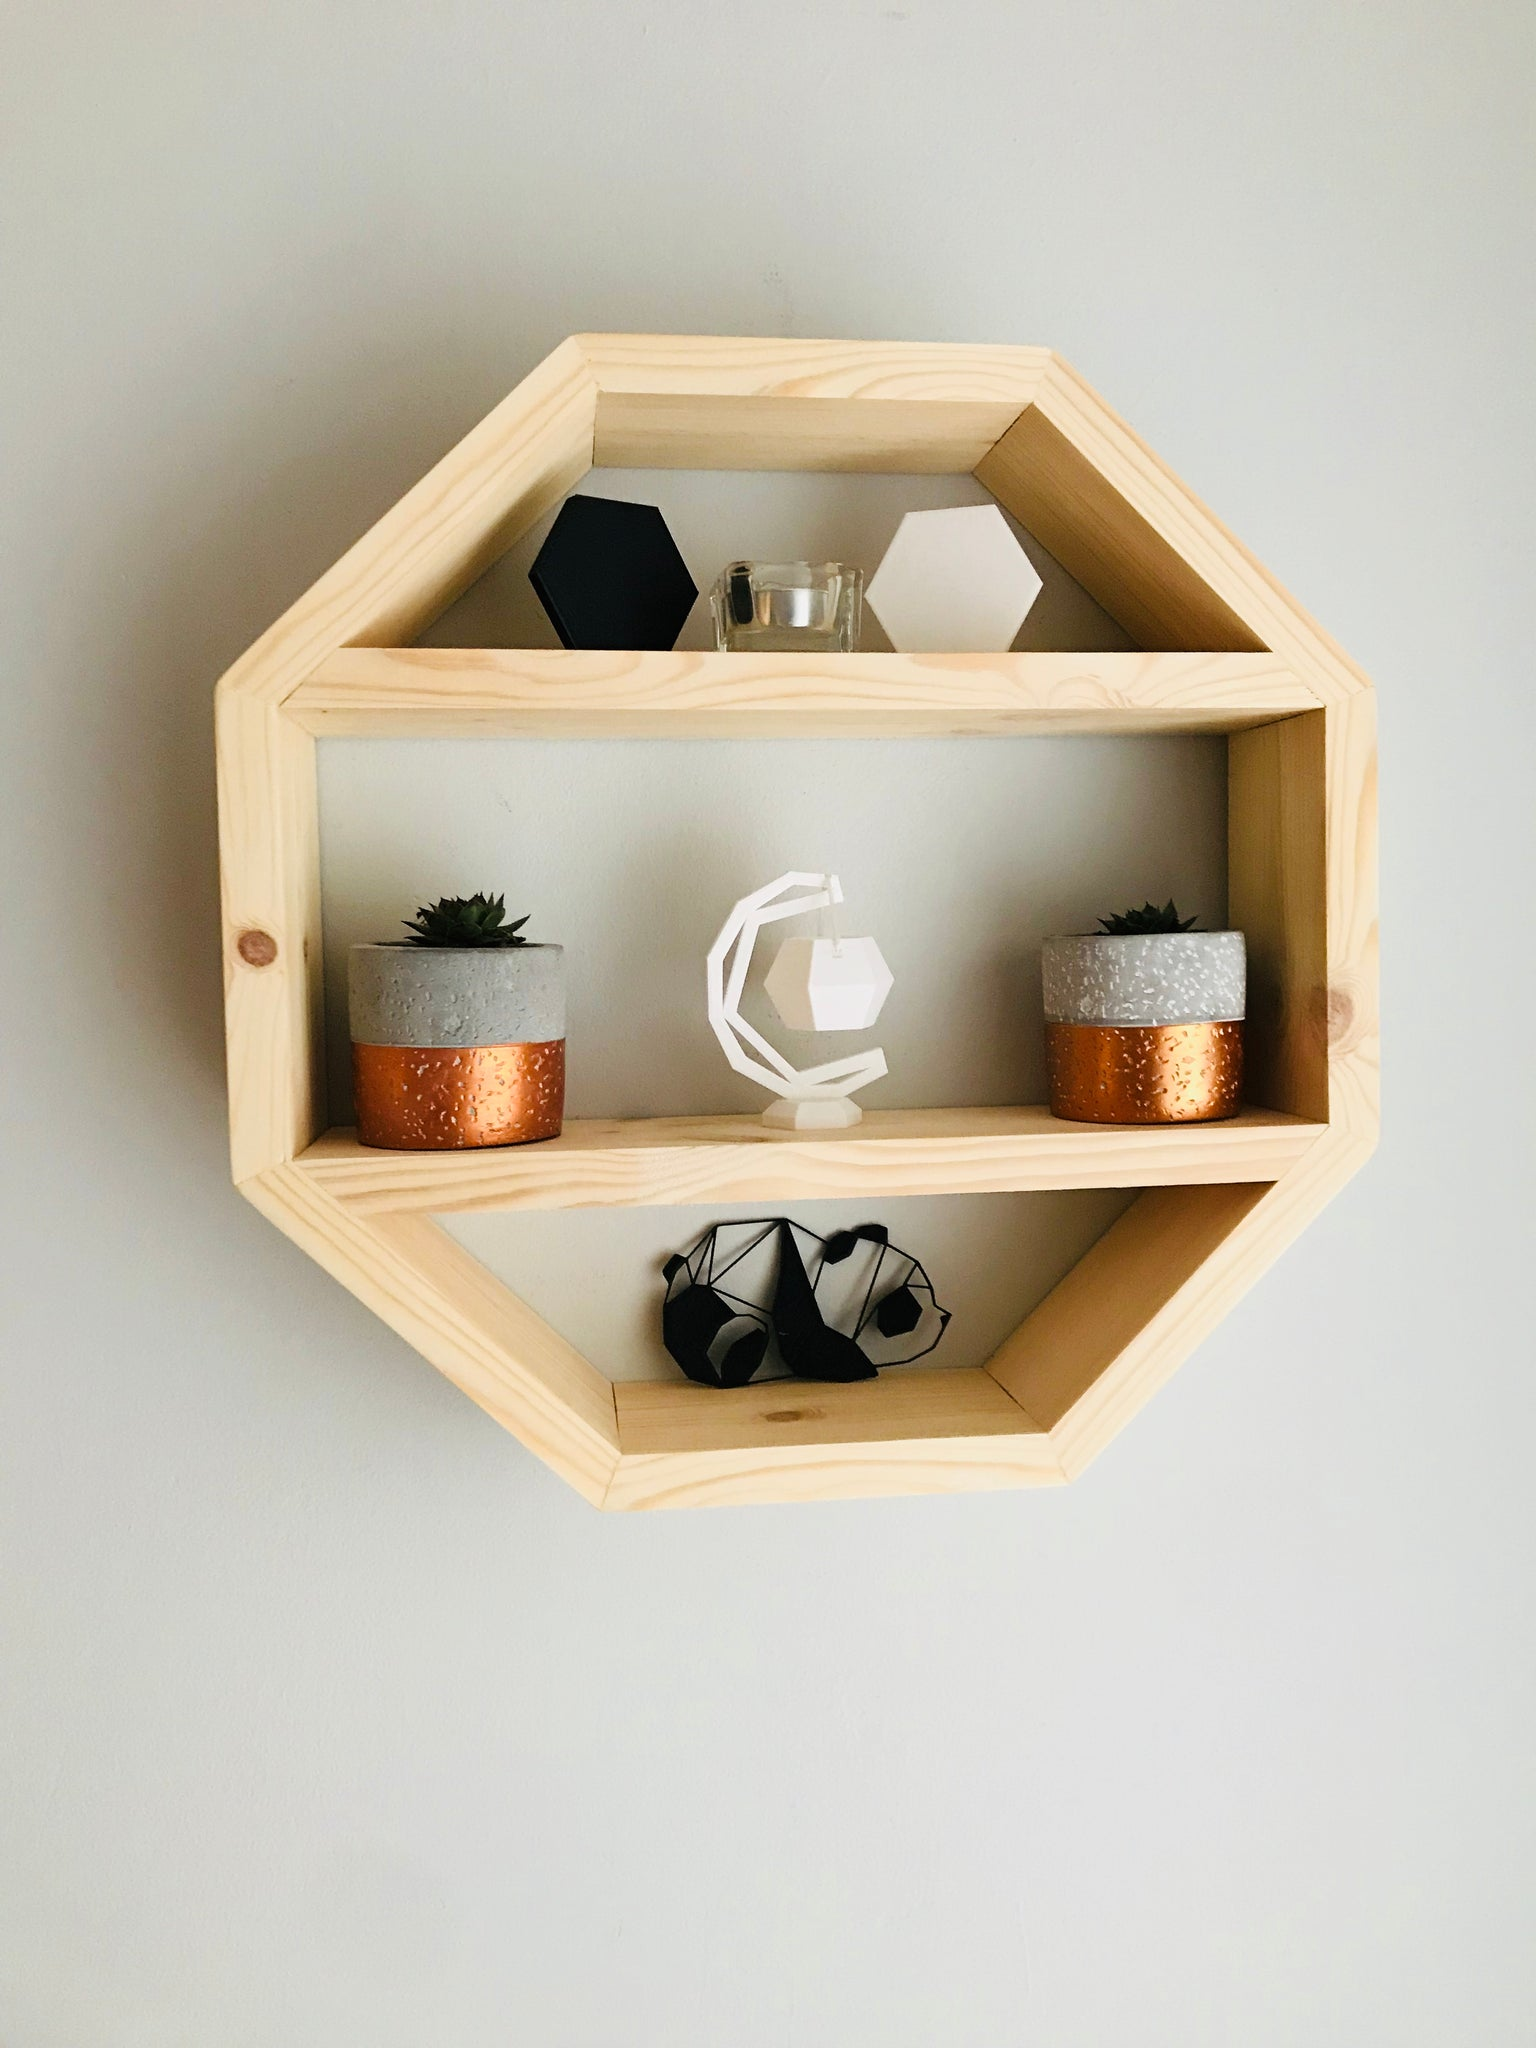 Floating geometric octagon shelf